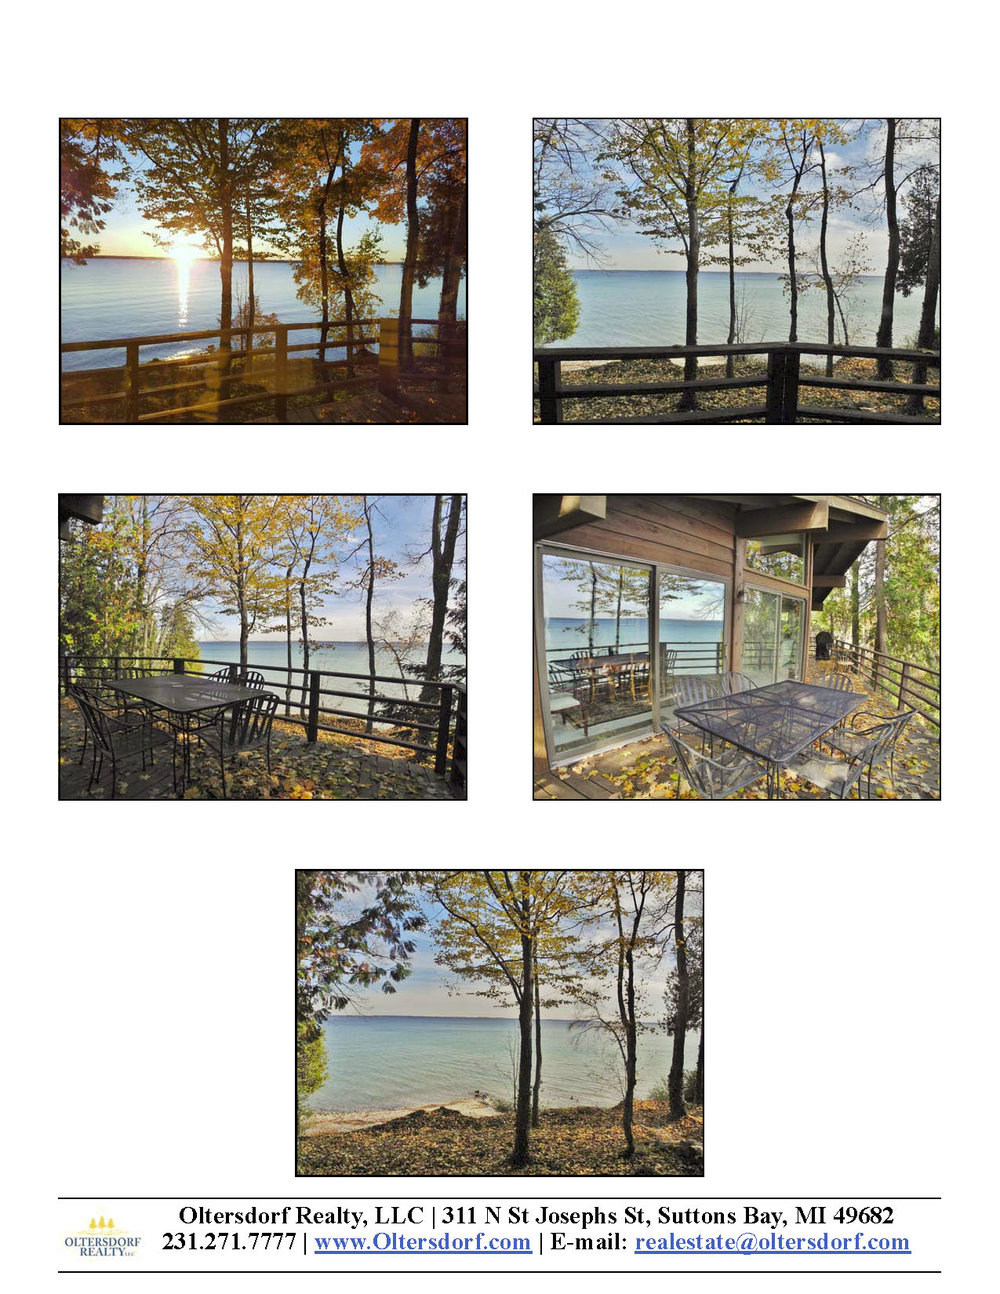 1355 S Nanagosa Trail Suttons Bay – FOR SALE by Oltersdorf Realty LLC - Marketing Packet (3).jpg